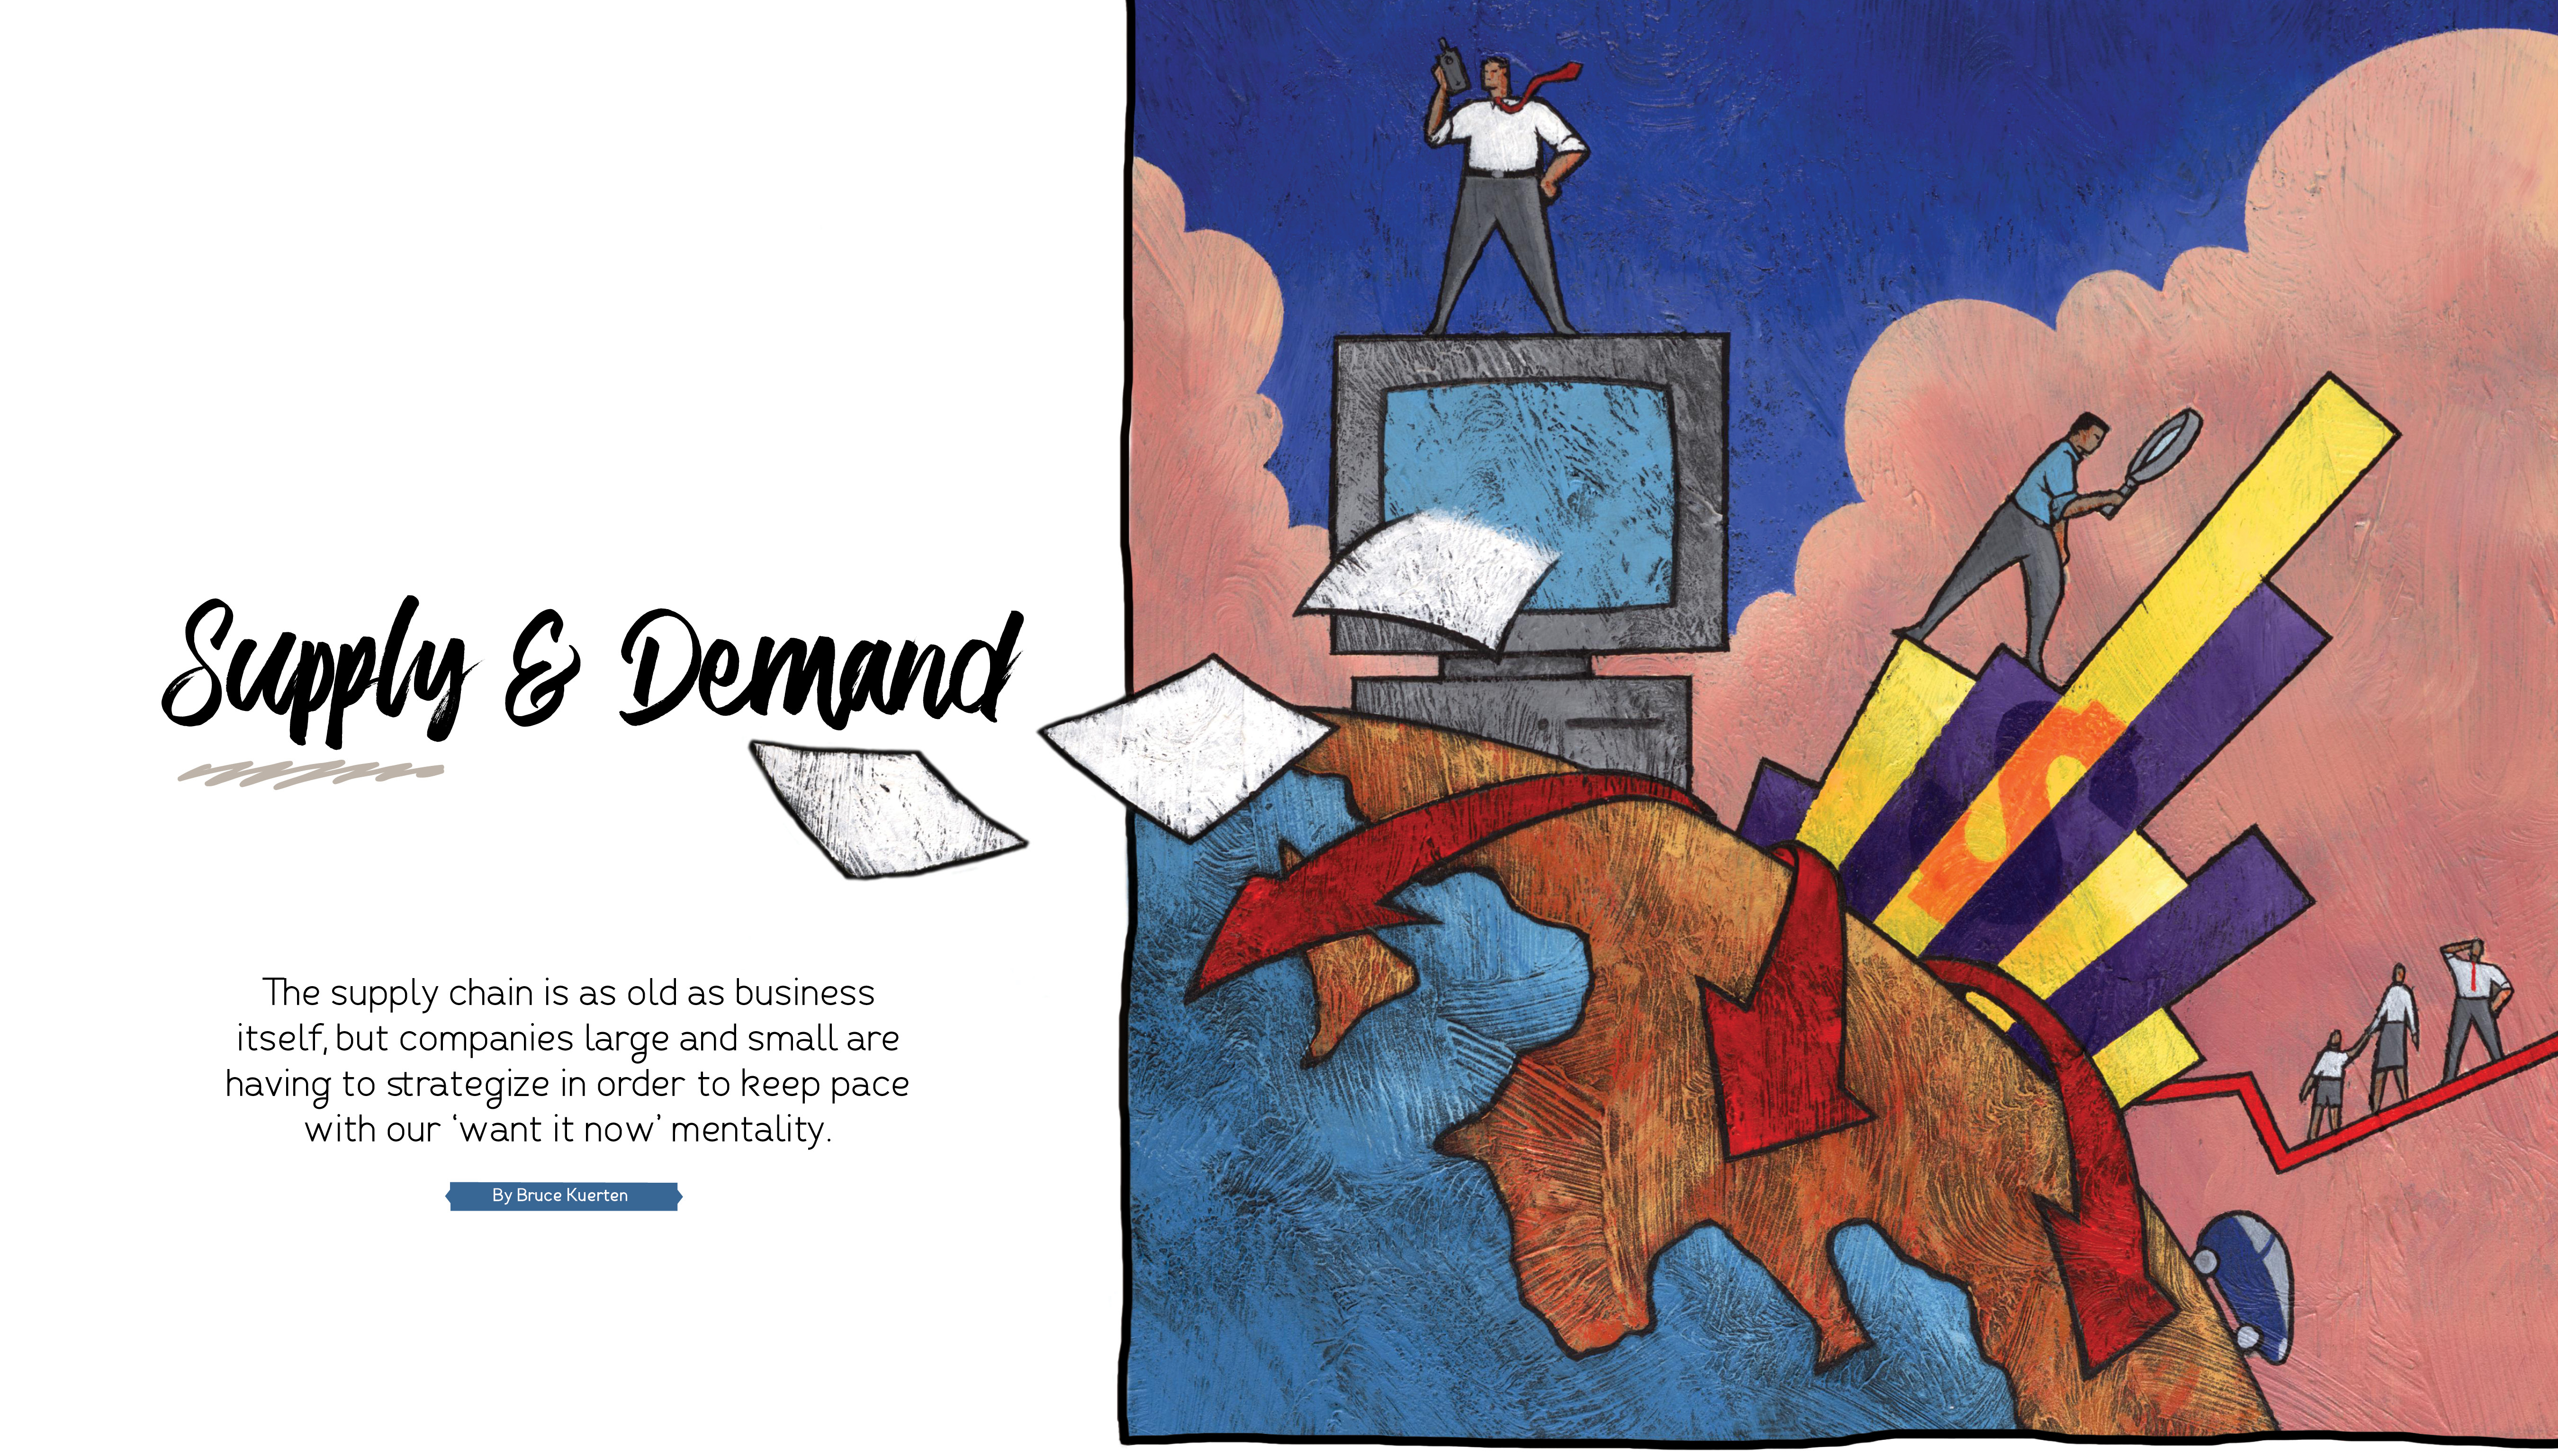 Supply and Demand by Bruce Kuerten; The supply chain is as old as business itself, but companies large and small are having to strategize in order to keep pace with our 'want it now' mentality.